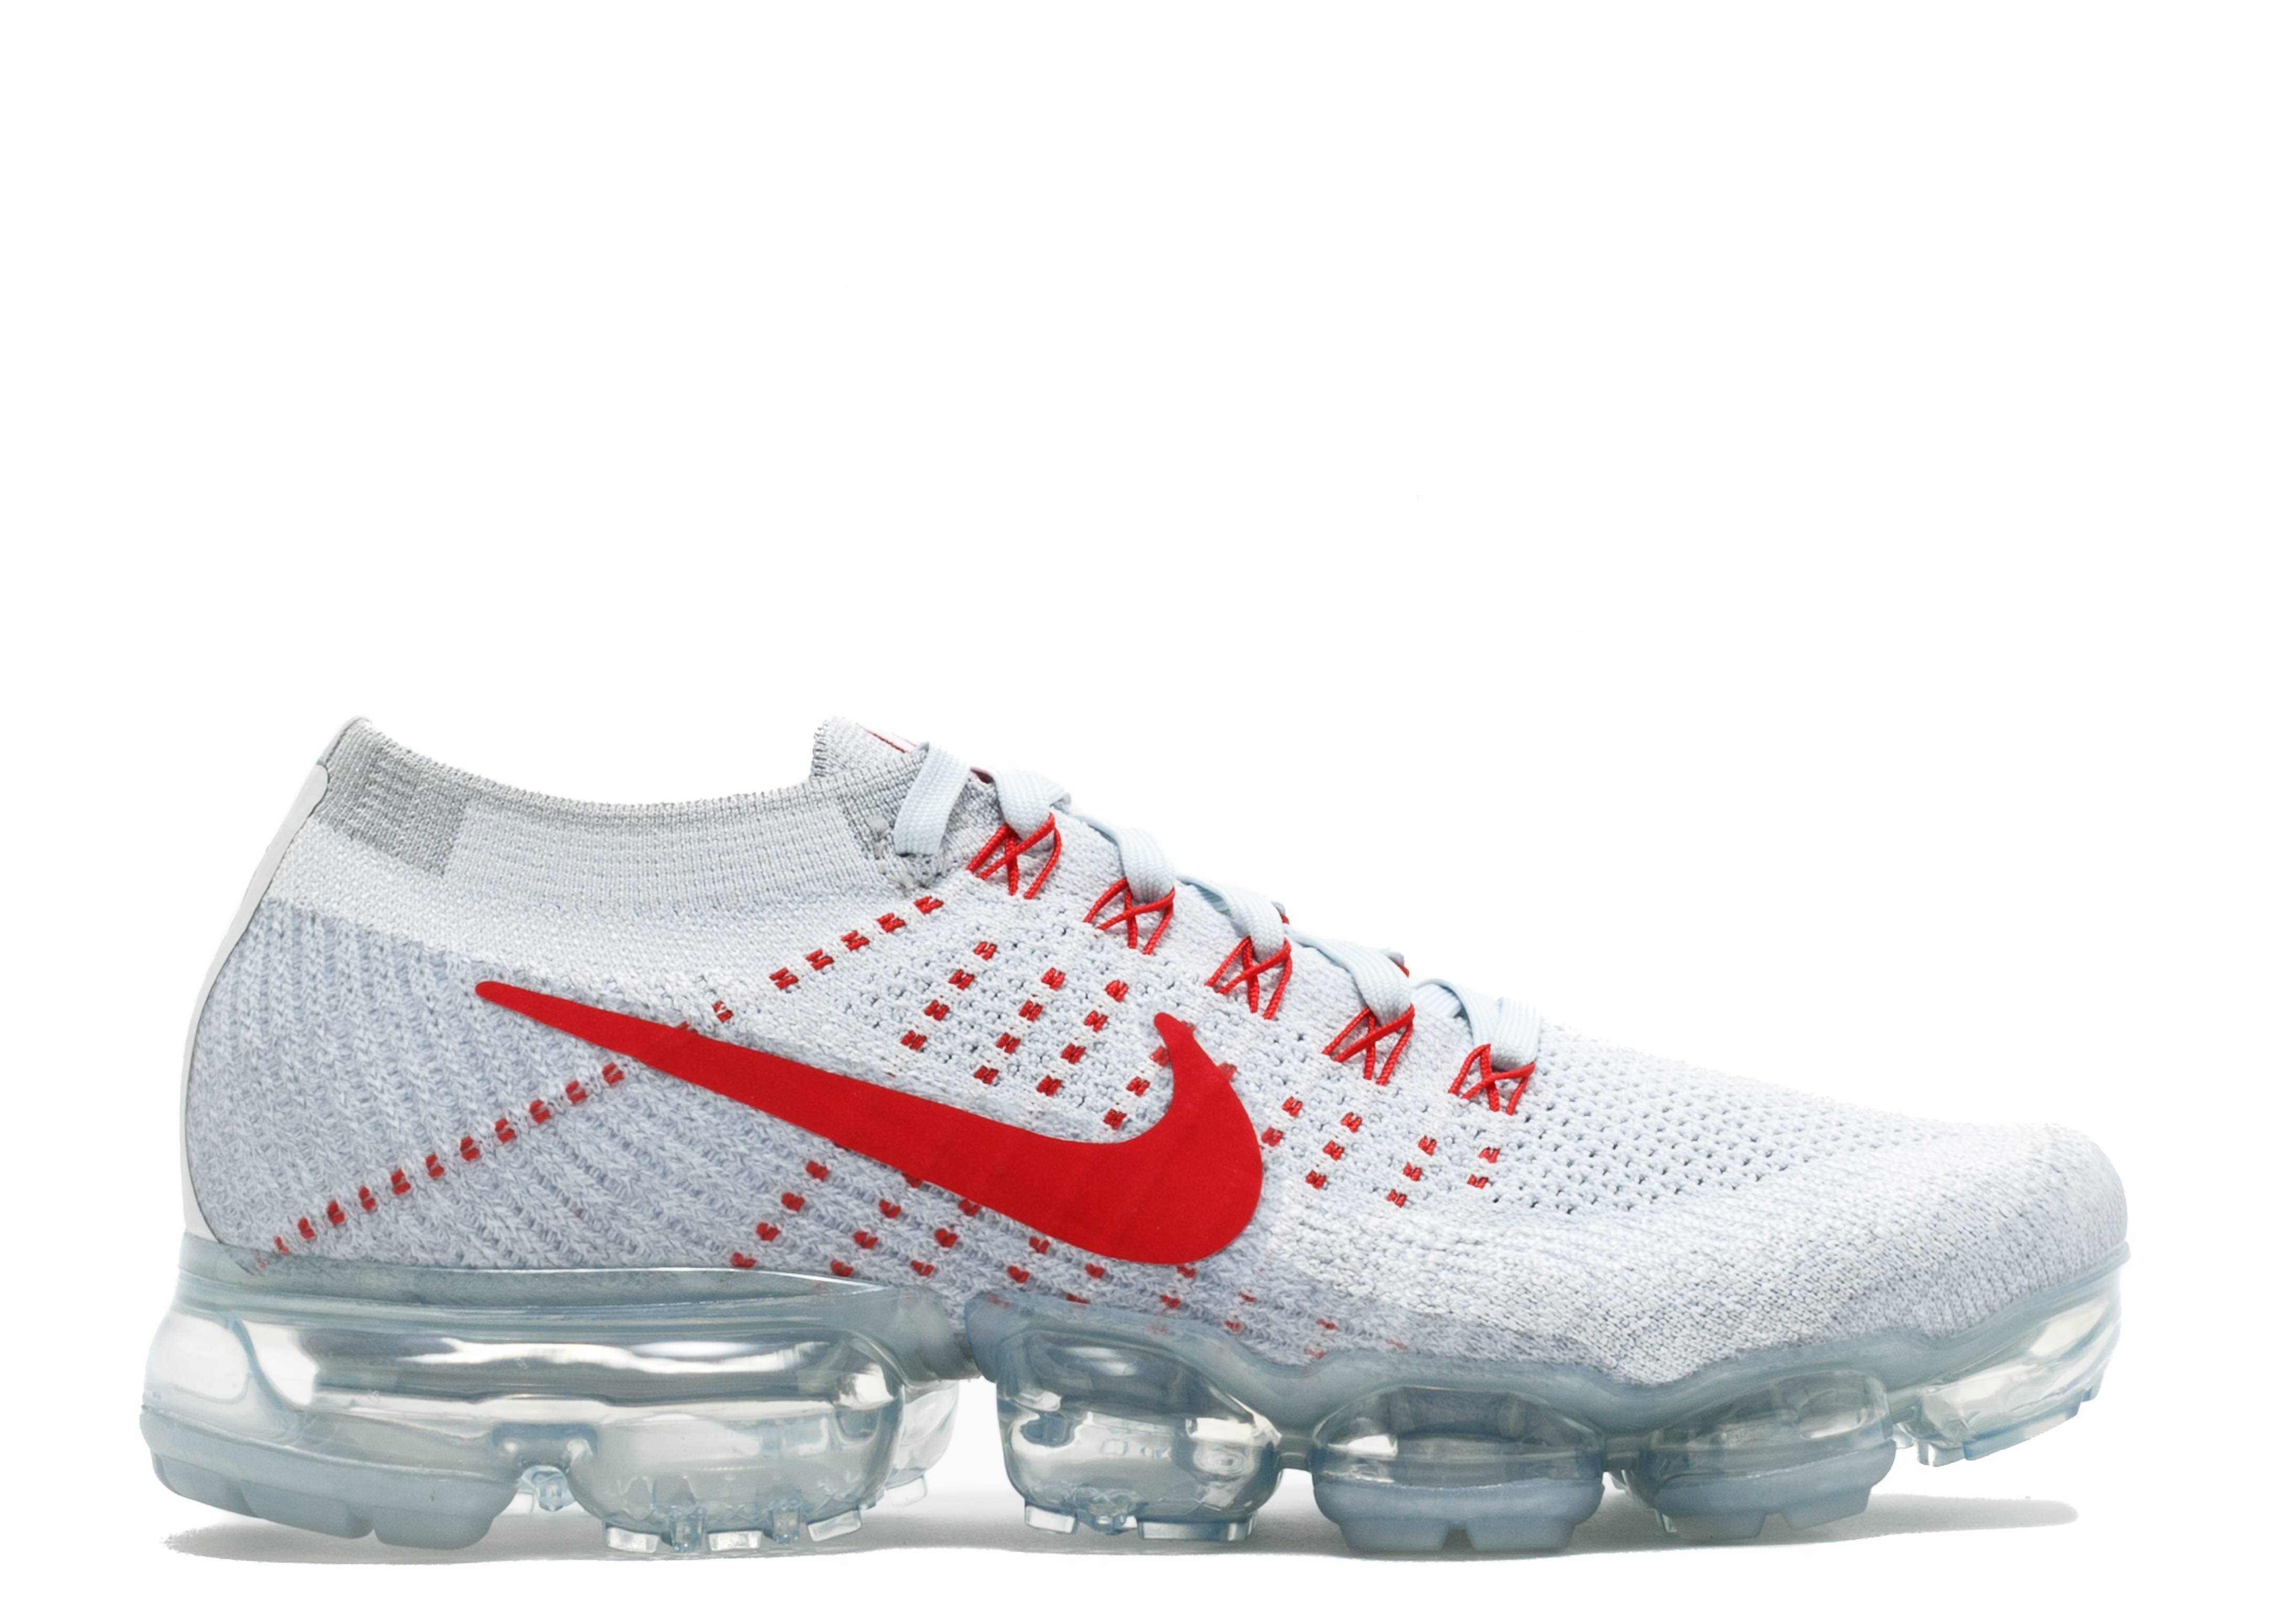 383ef7c1759 Wmns Nike Air Vapormax Flyknit - Nike - 849557 060 - pure platinum ...